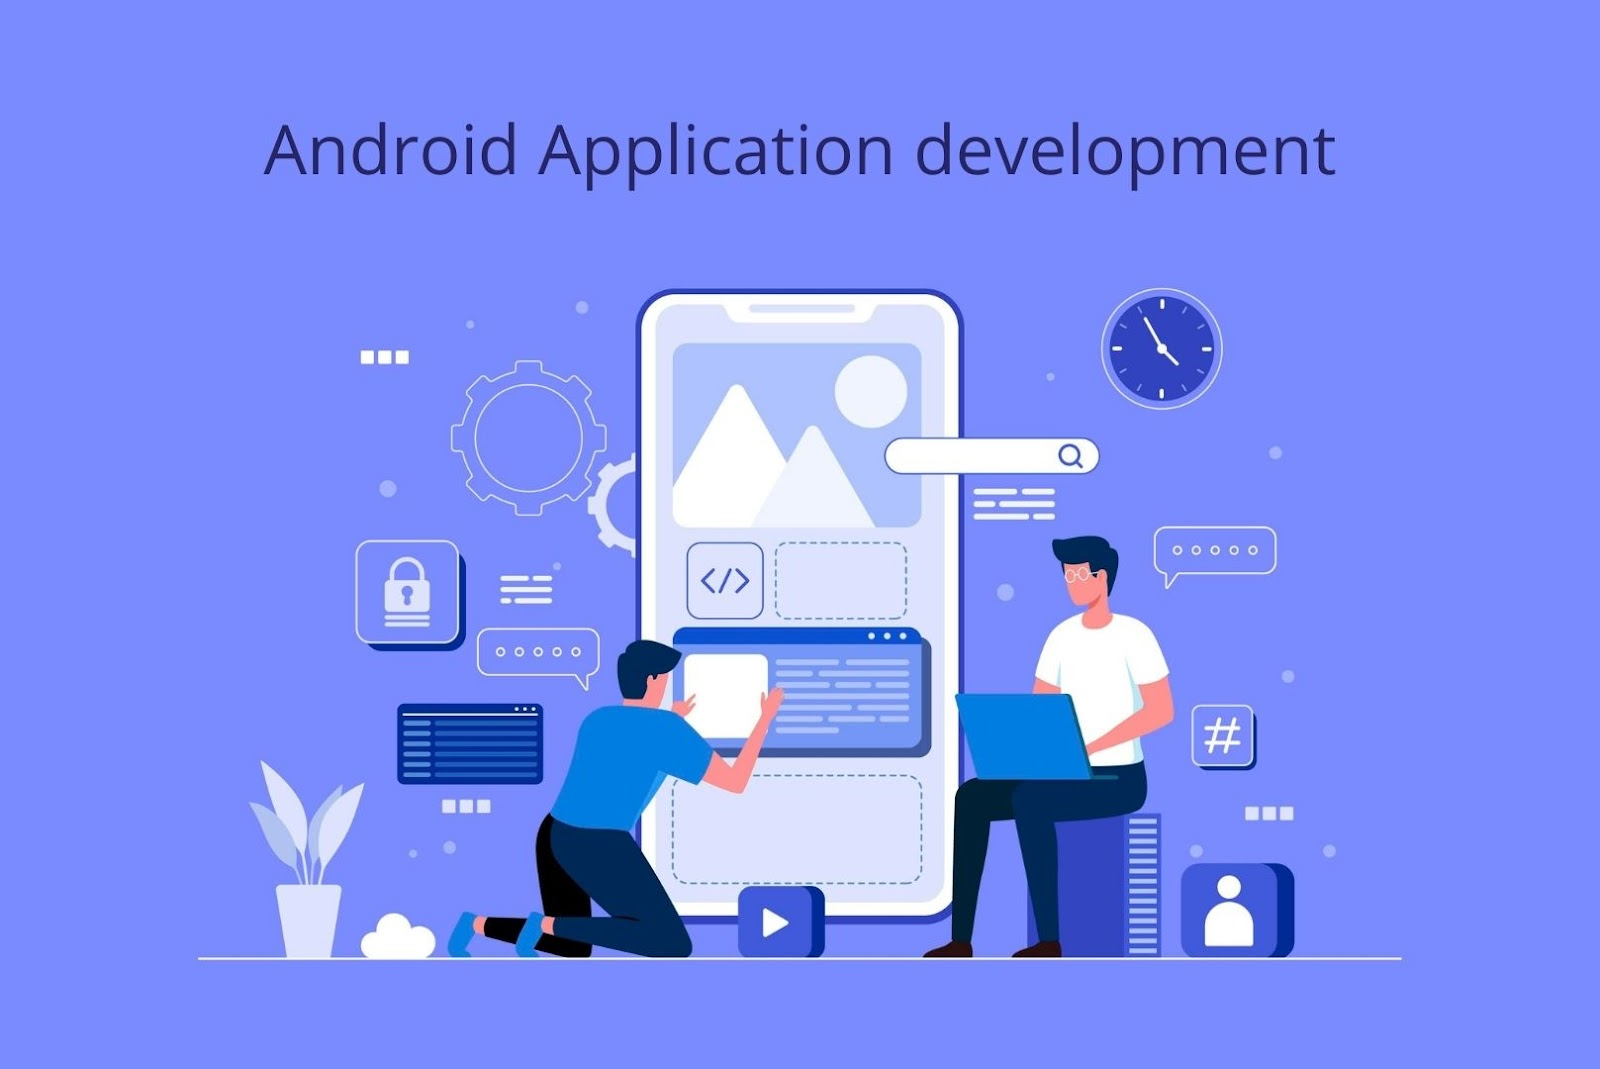 Android Application Development Trends